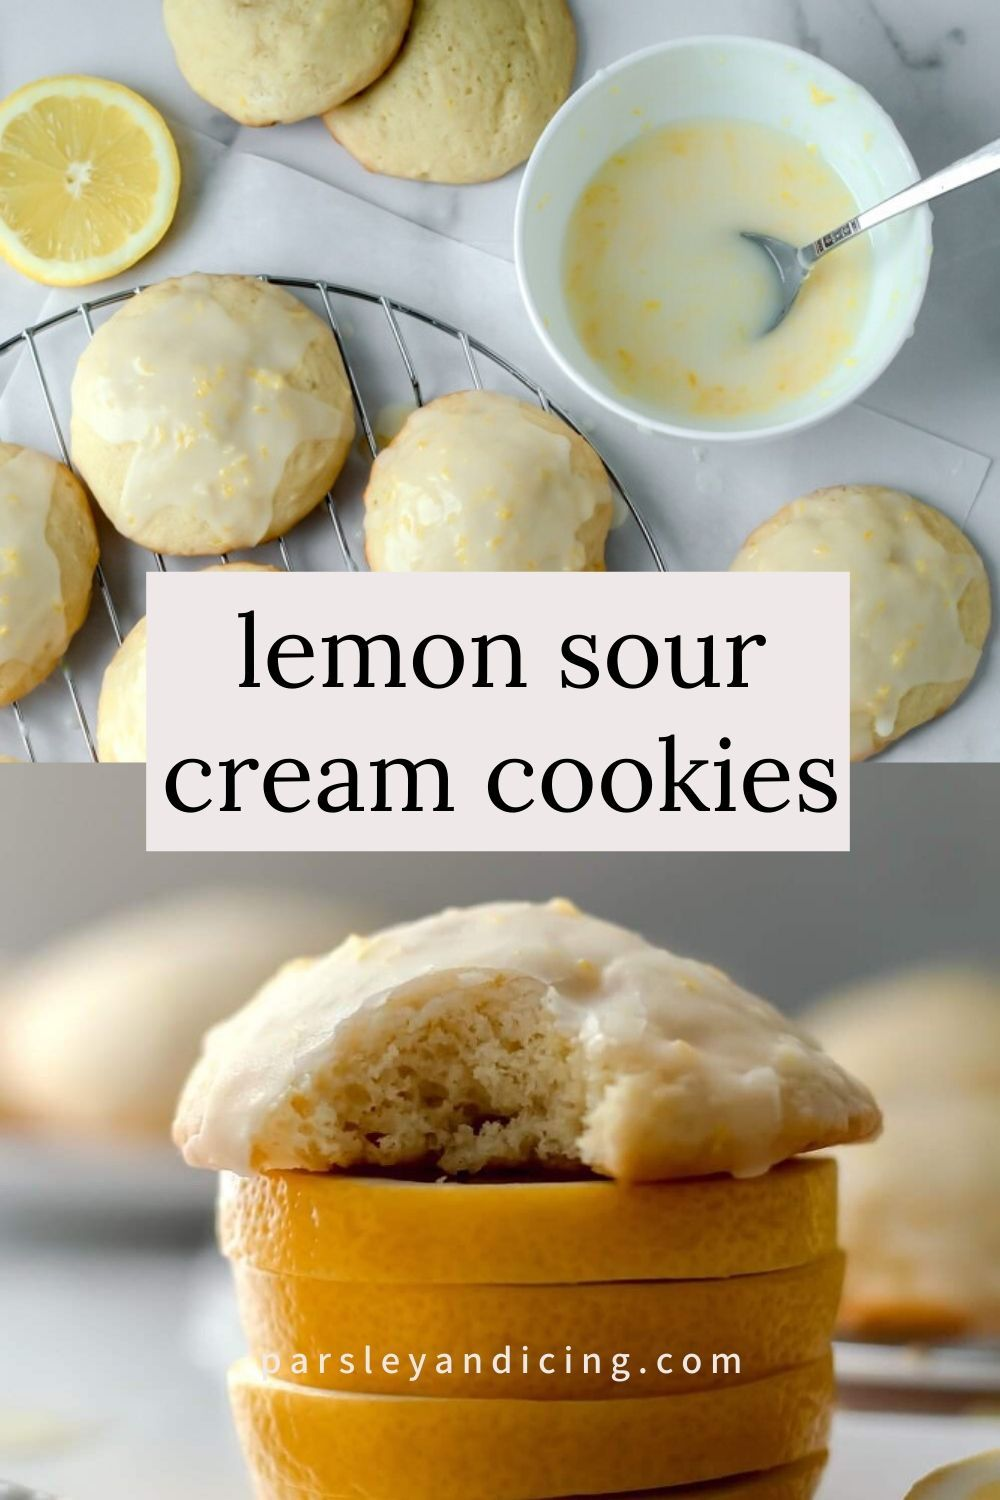 Lemon Sour Cream Cookies Parsley And Icing Recipe In 2020 Sour Cream Cookies Sweet Cookies Lemon Recipes